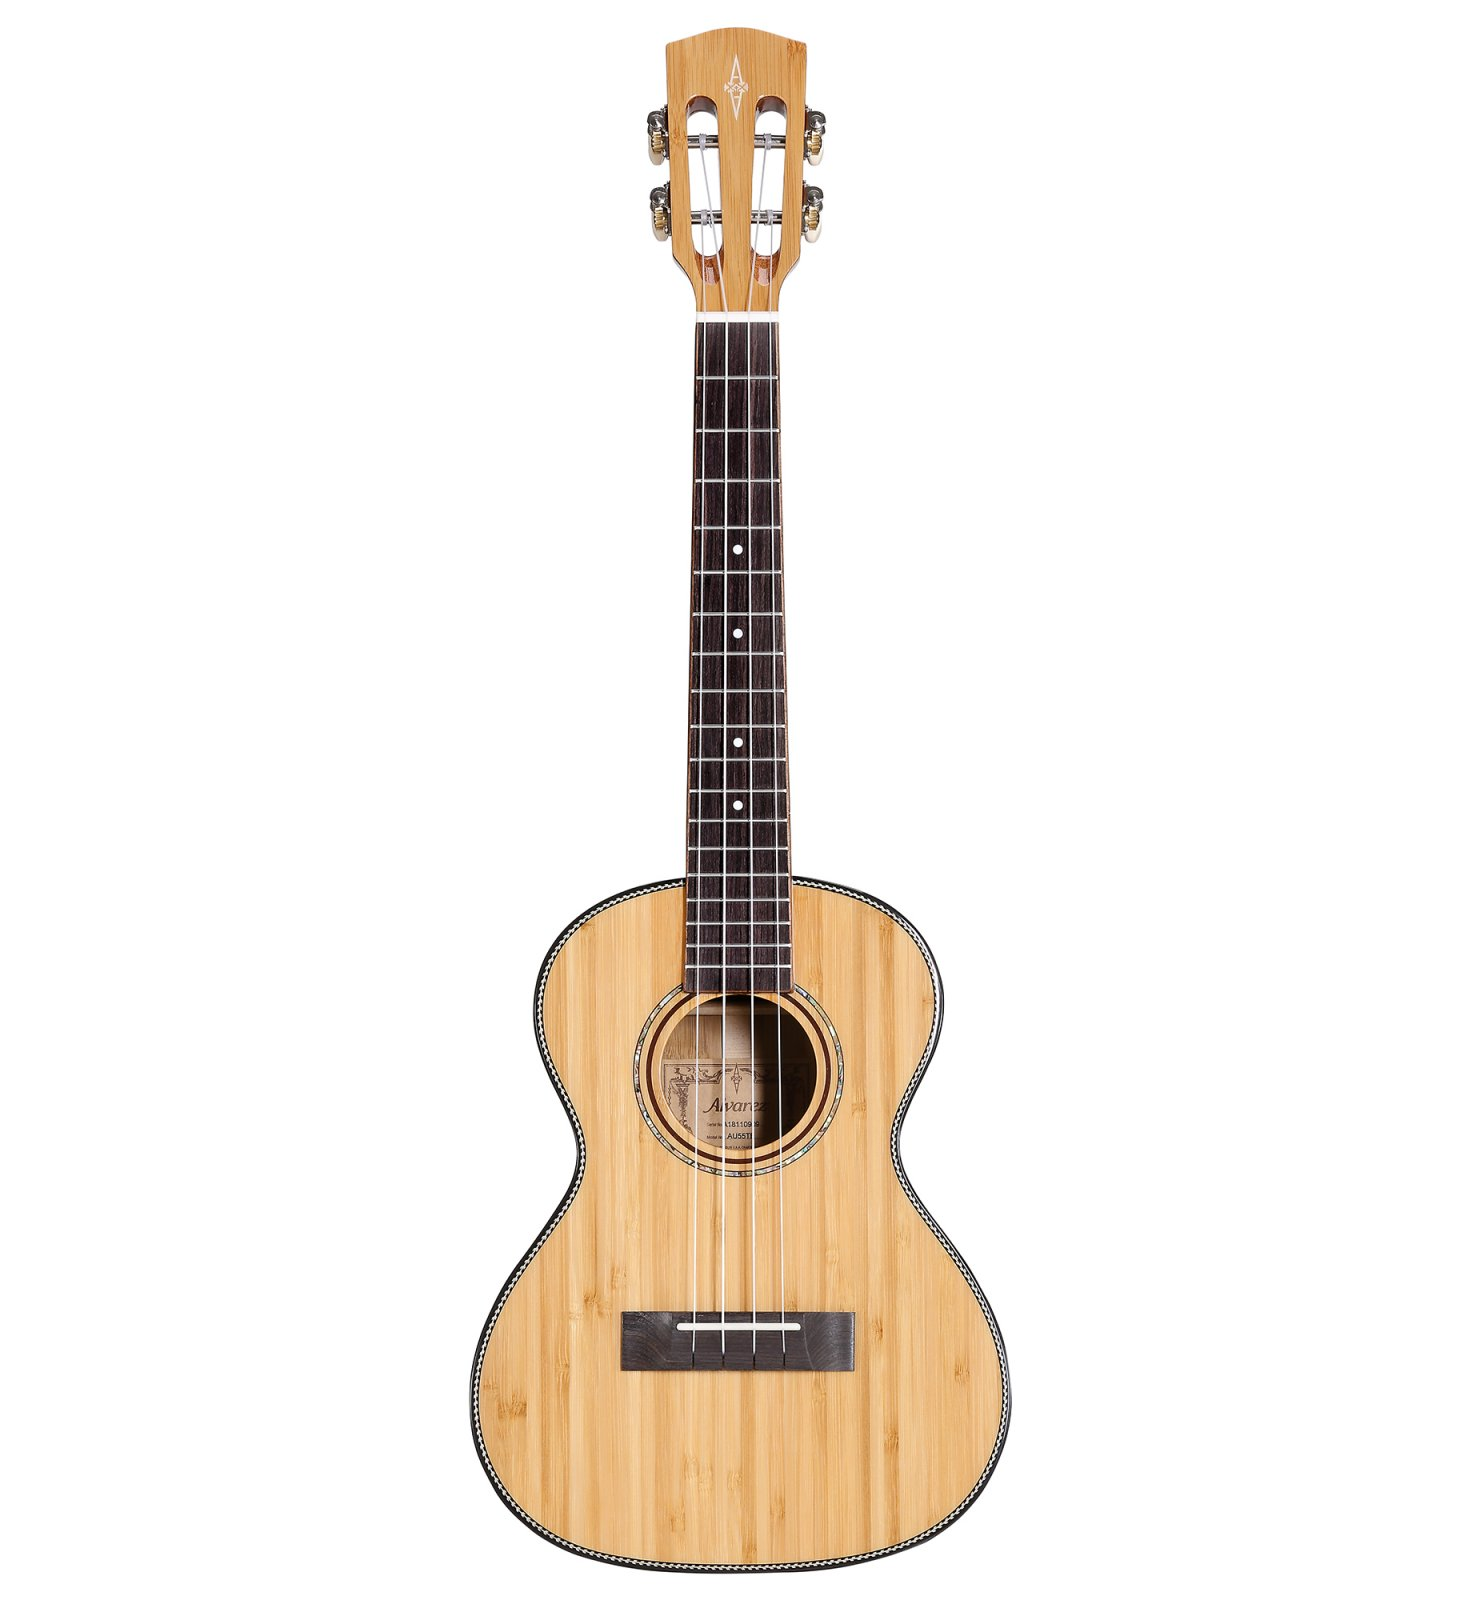 Alvarez MU55TE Masterworks, All-Solid Tenor, Acoustic/Electric Tenor Ukulele